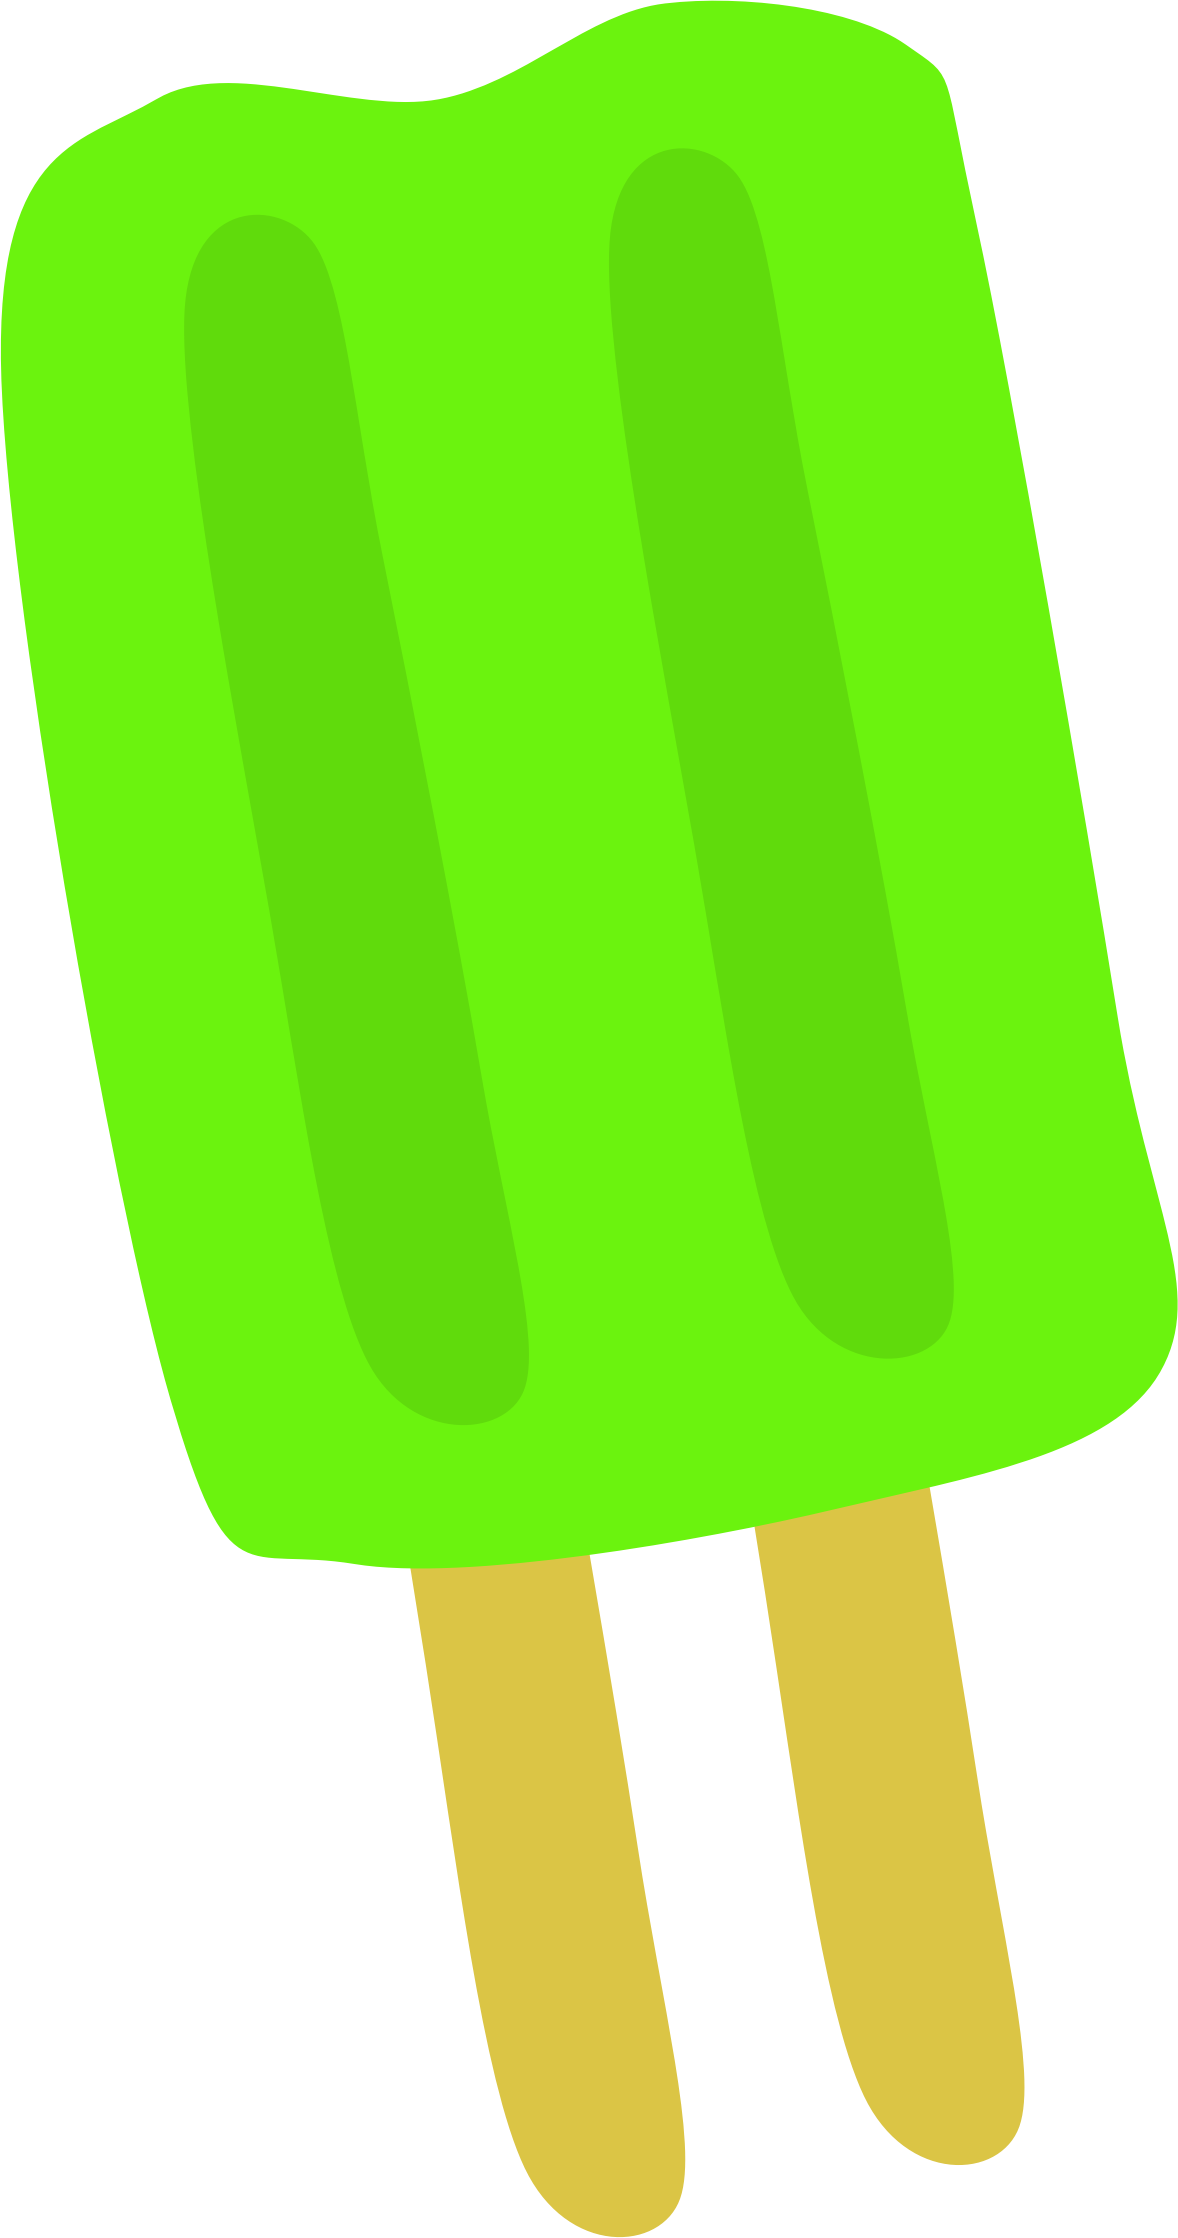 Popsicle clip art images illustrations photos